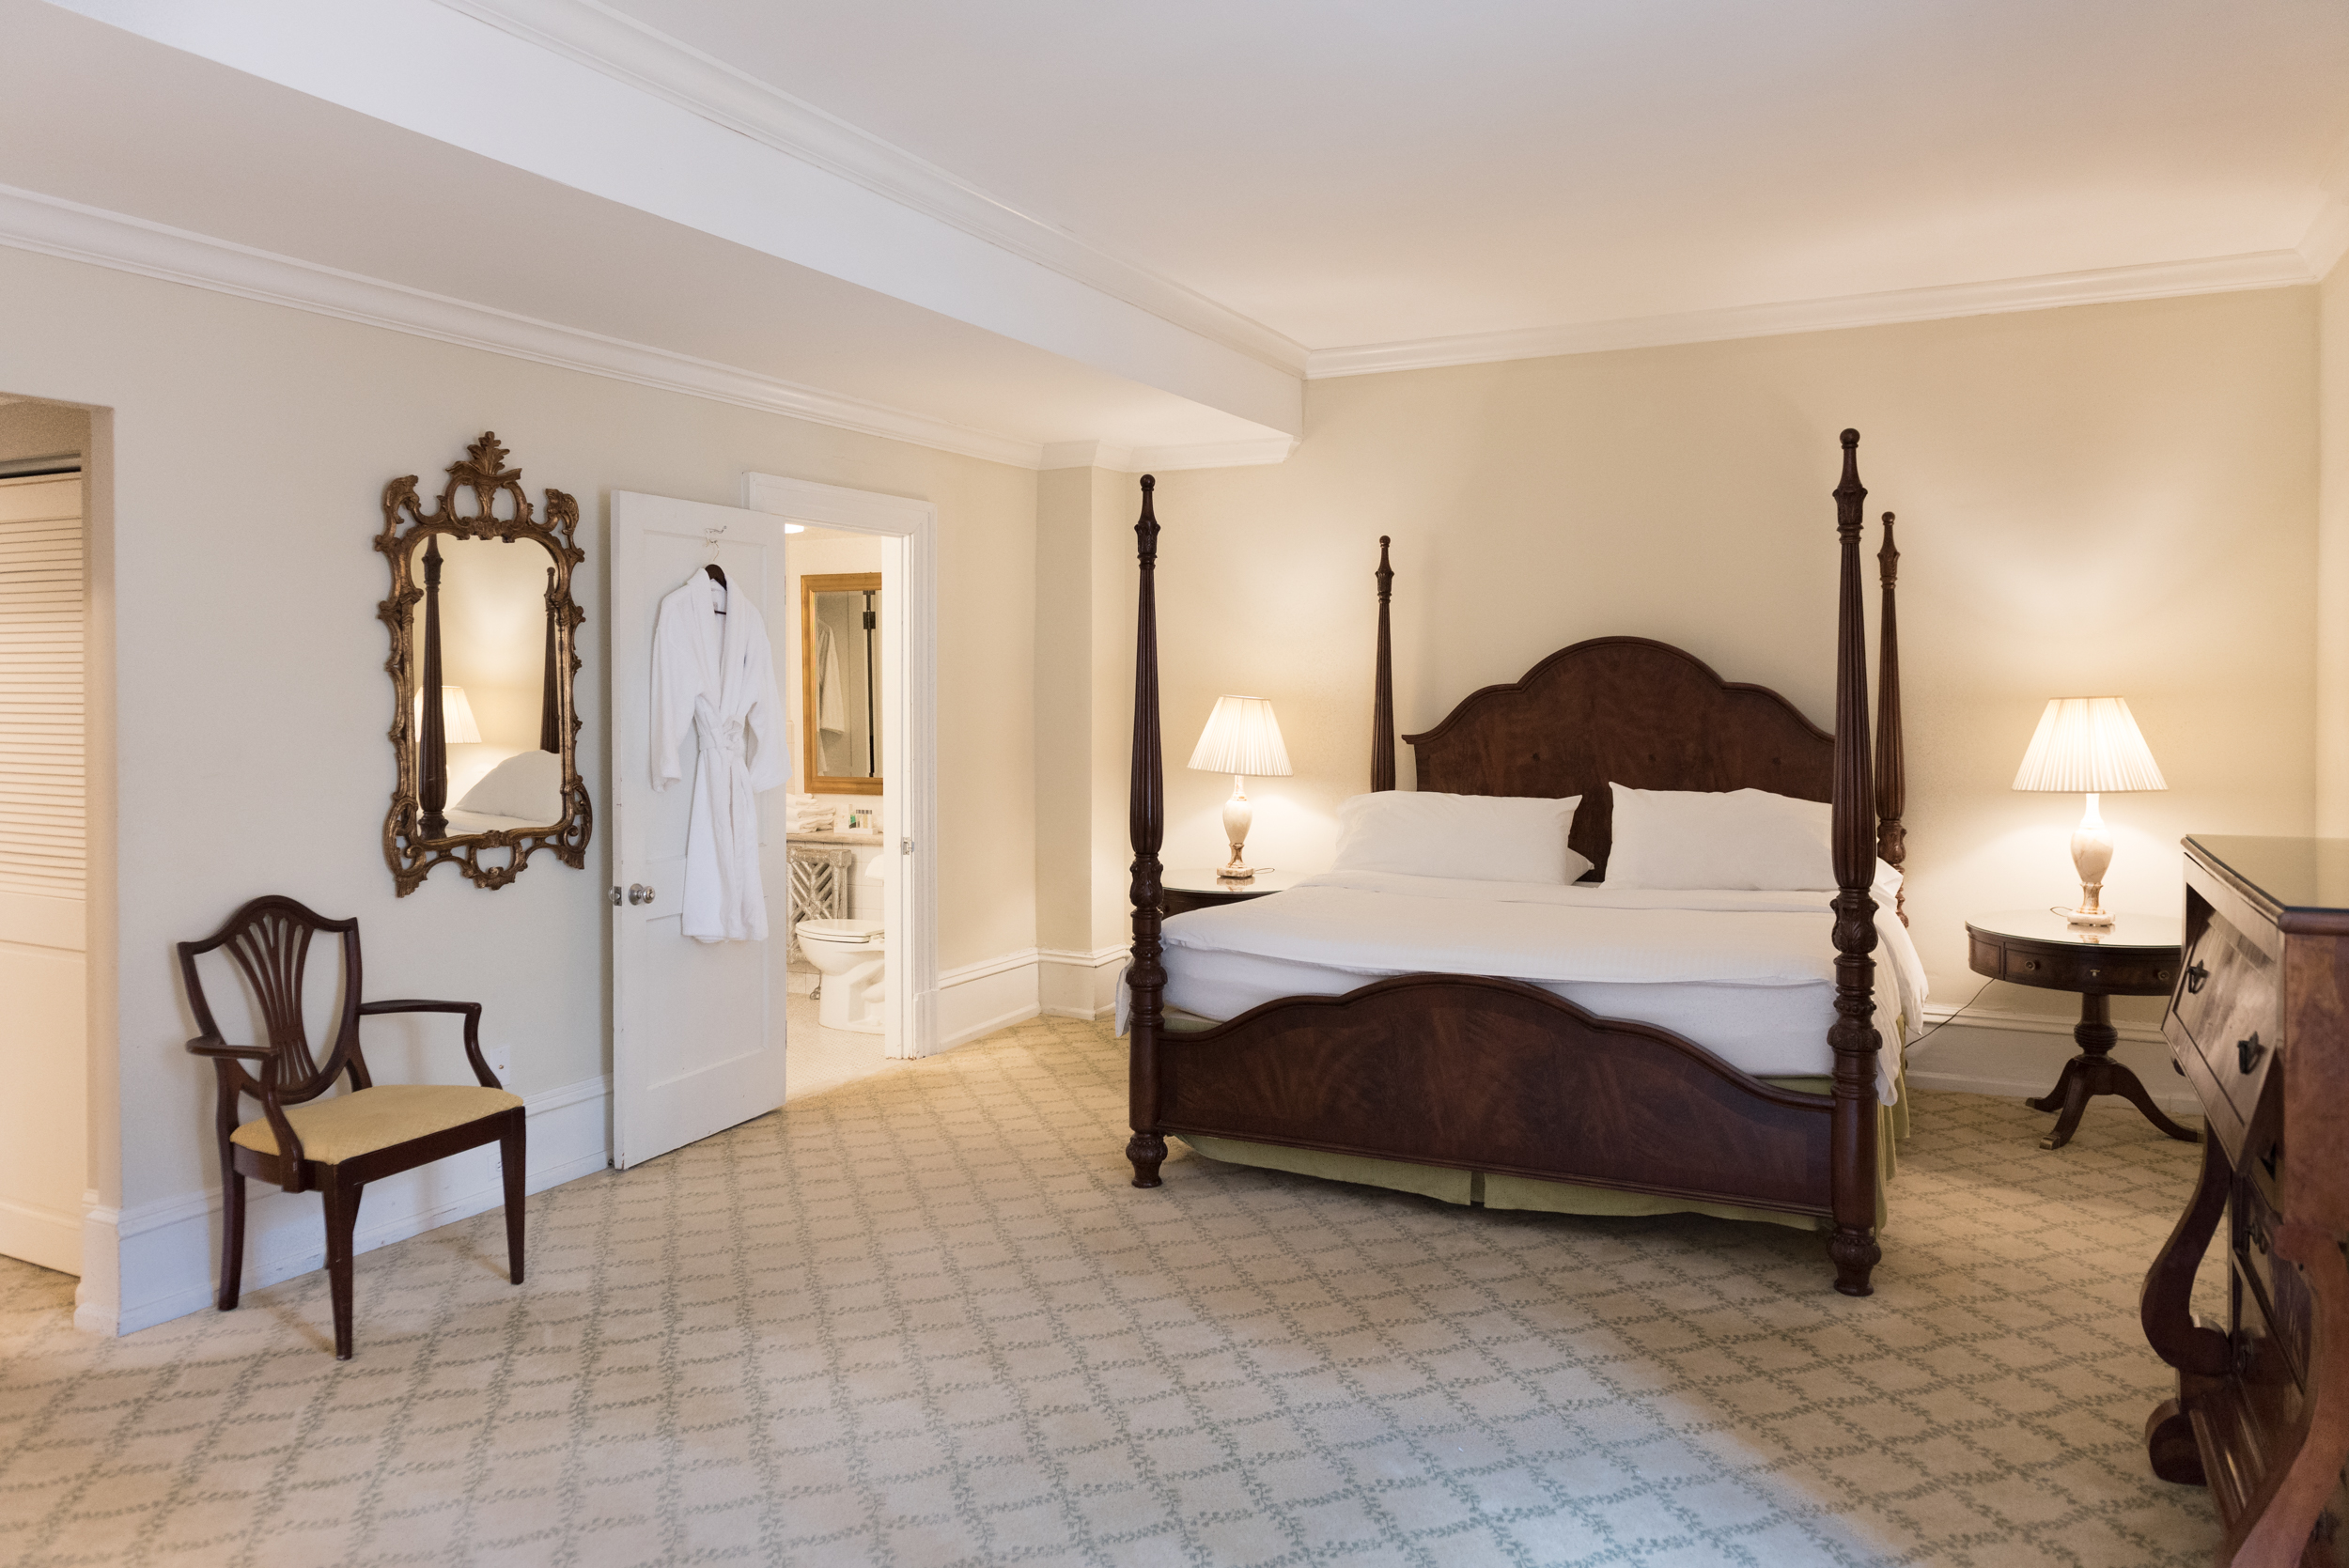 Stupendous Guest Rooms The Racquet Club Of Philadelphia Evergreenethics Interior Chair Design Evergreenethicsorg